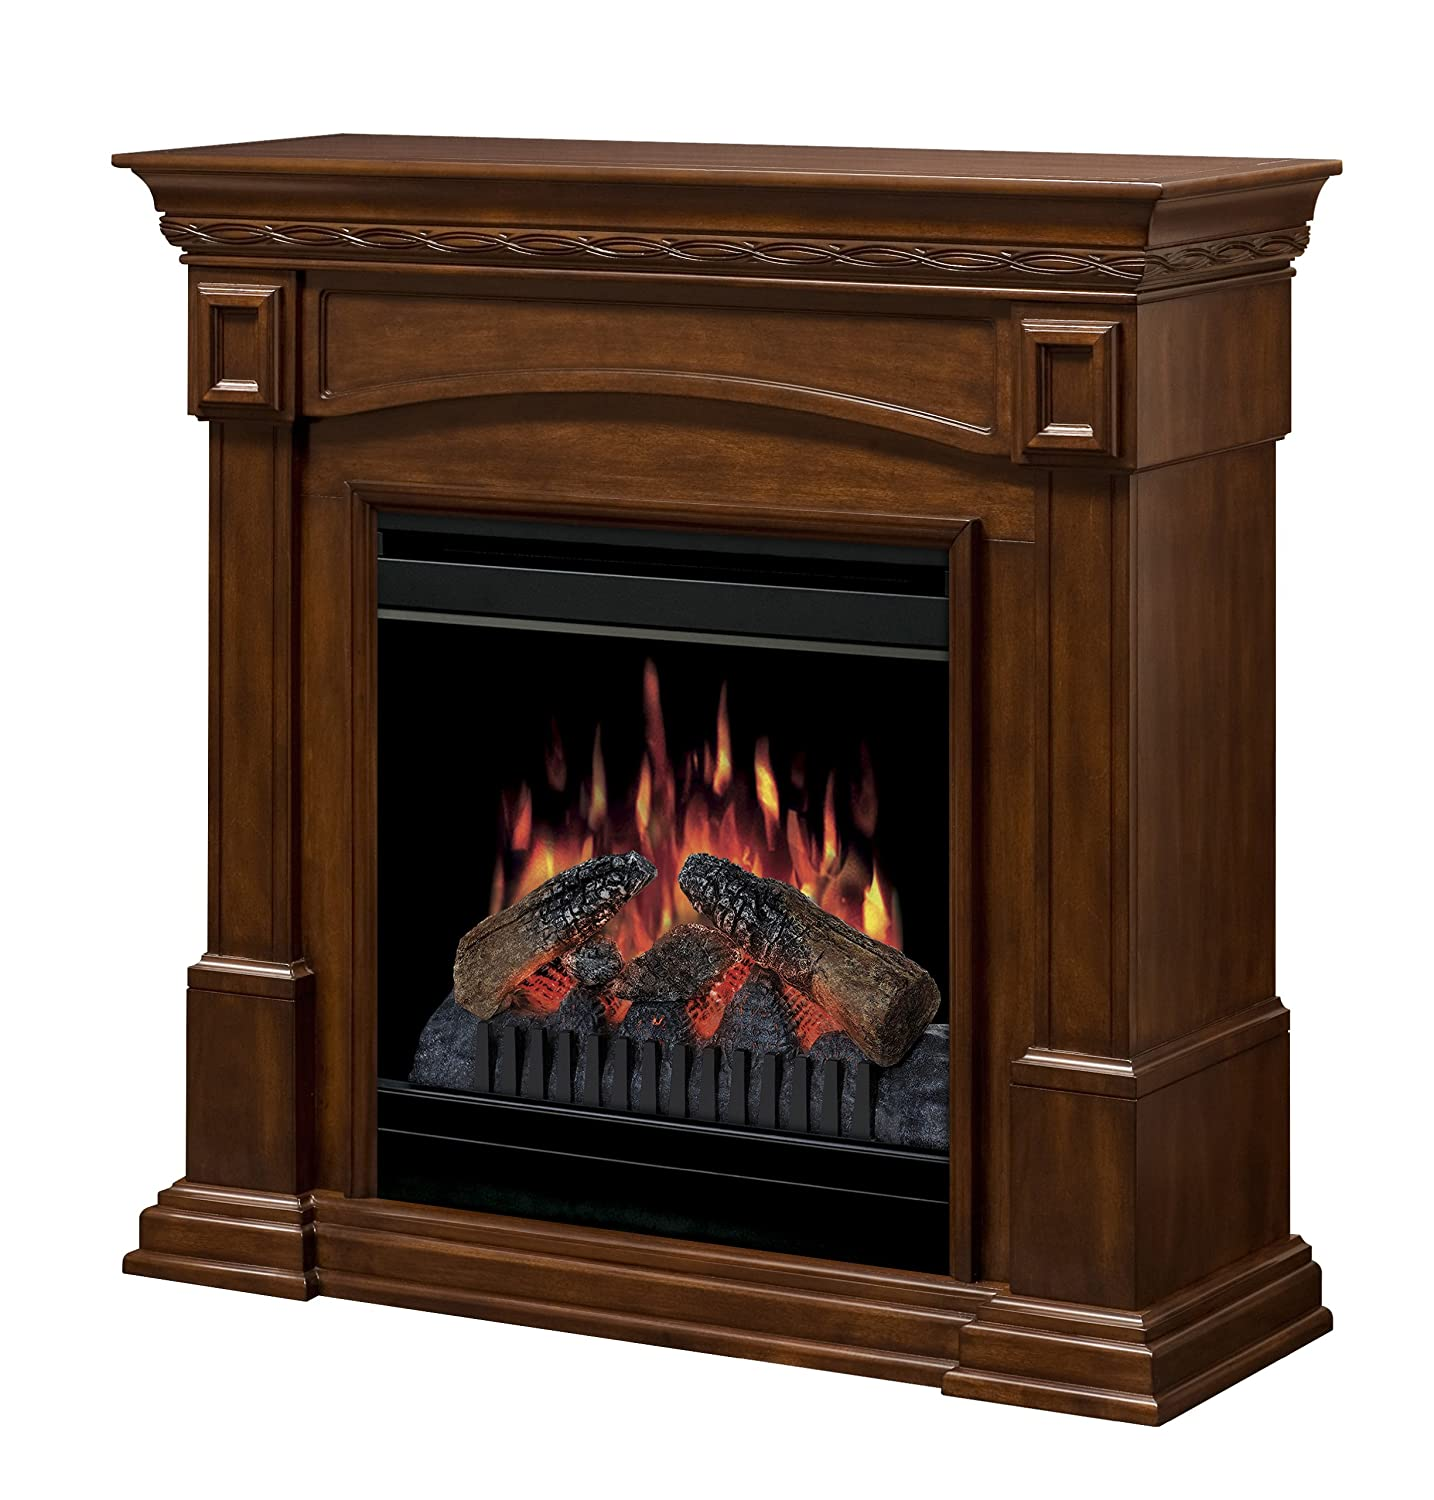 Amazon.com: Dimplex CFP3920BW 20-Inch Electric Fireplace, Burnished Walnut:  Home & Kitchen